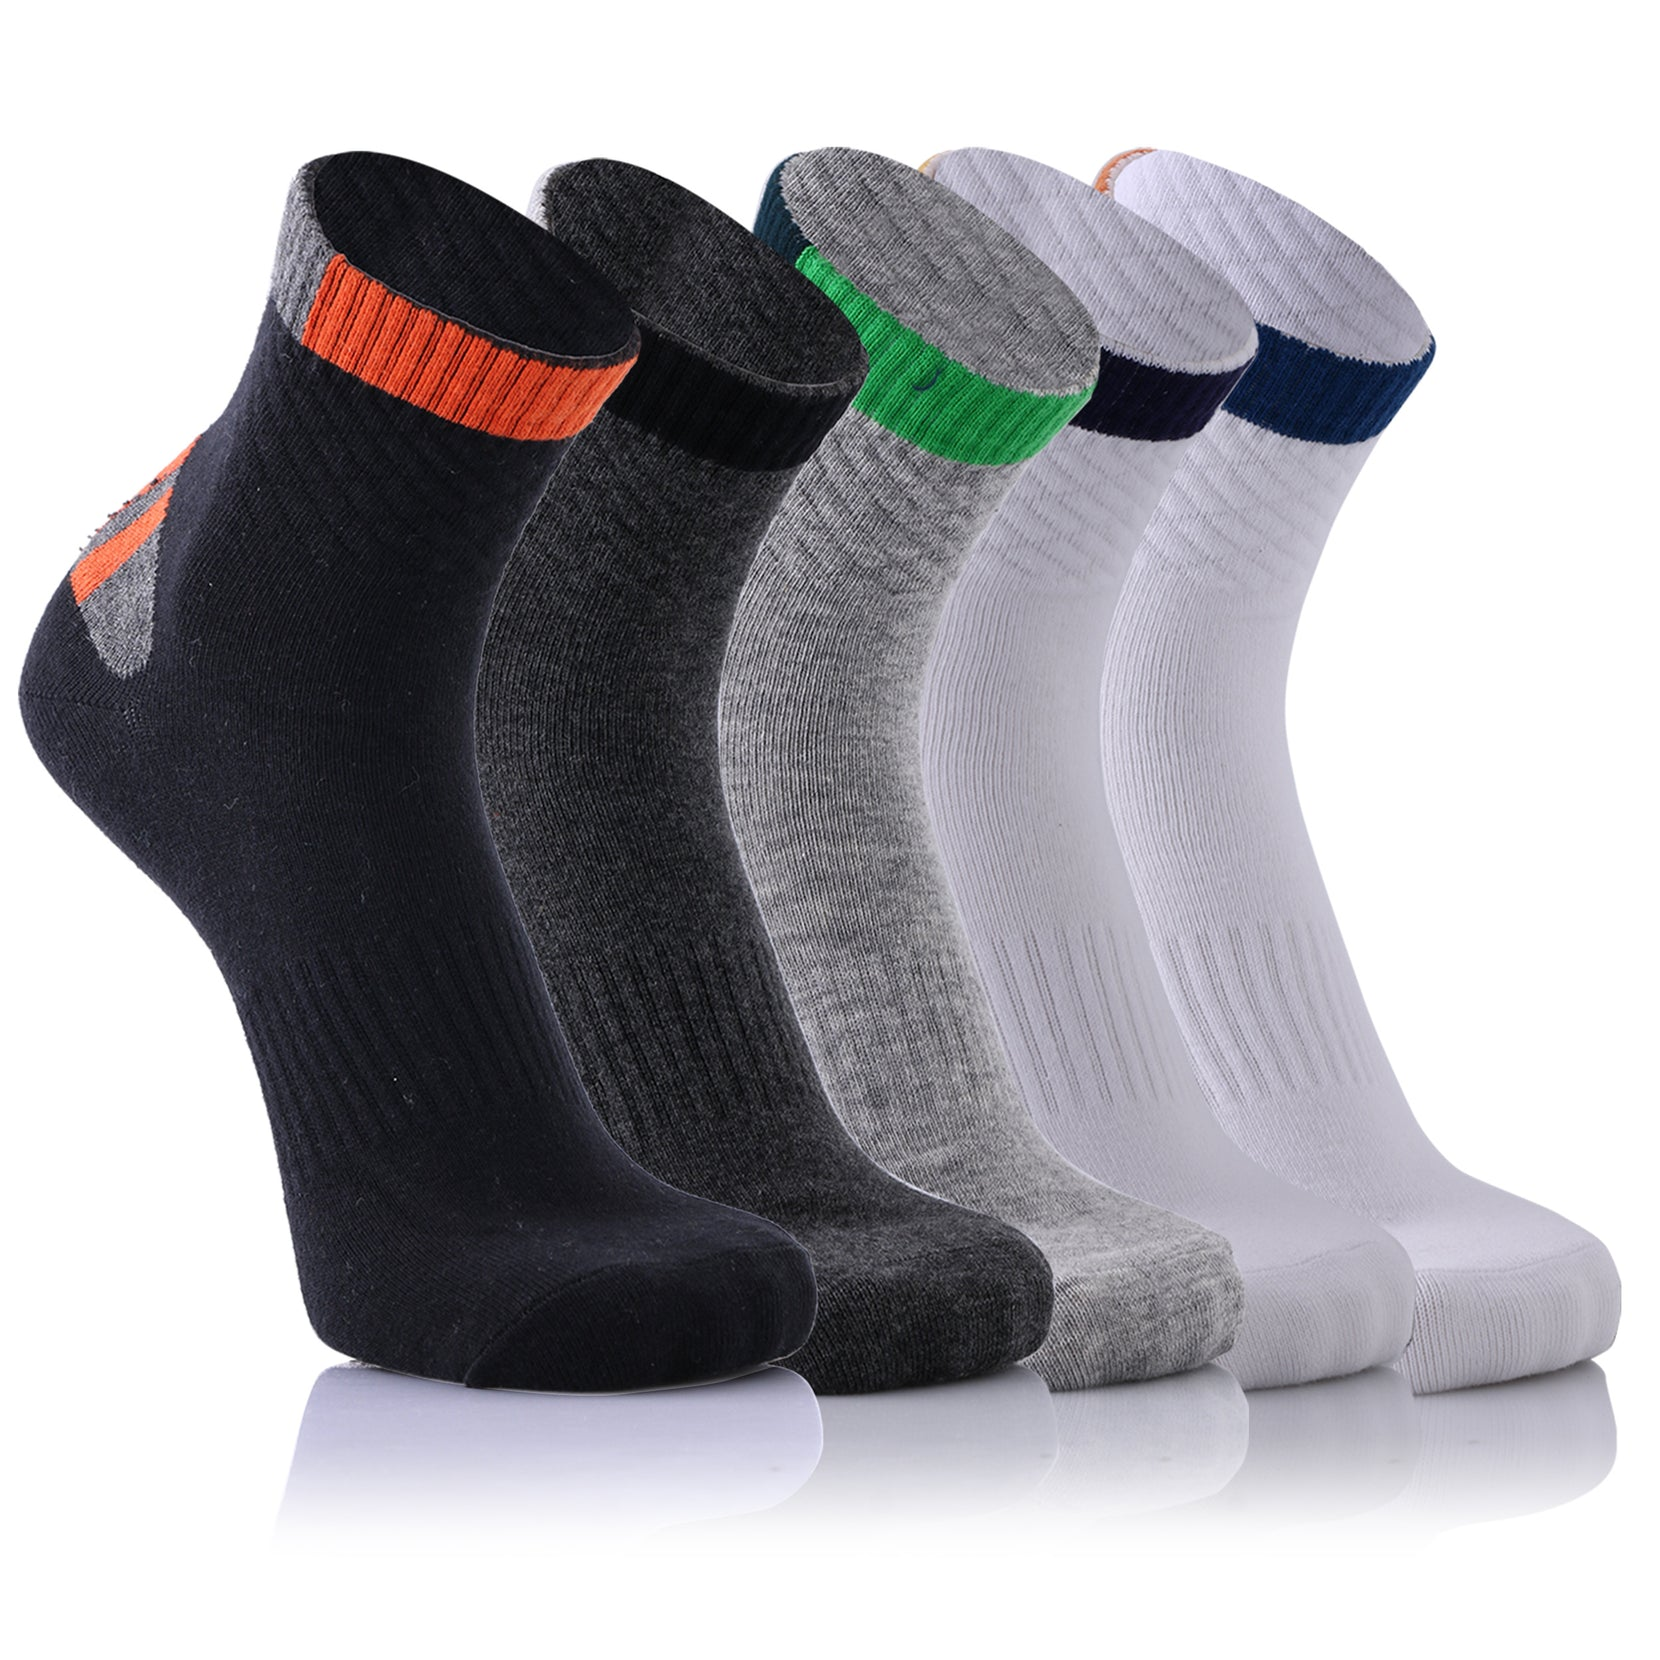 5-Pairs : All Day Relief Crew Length Compression Socks